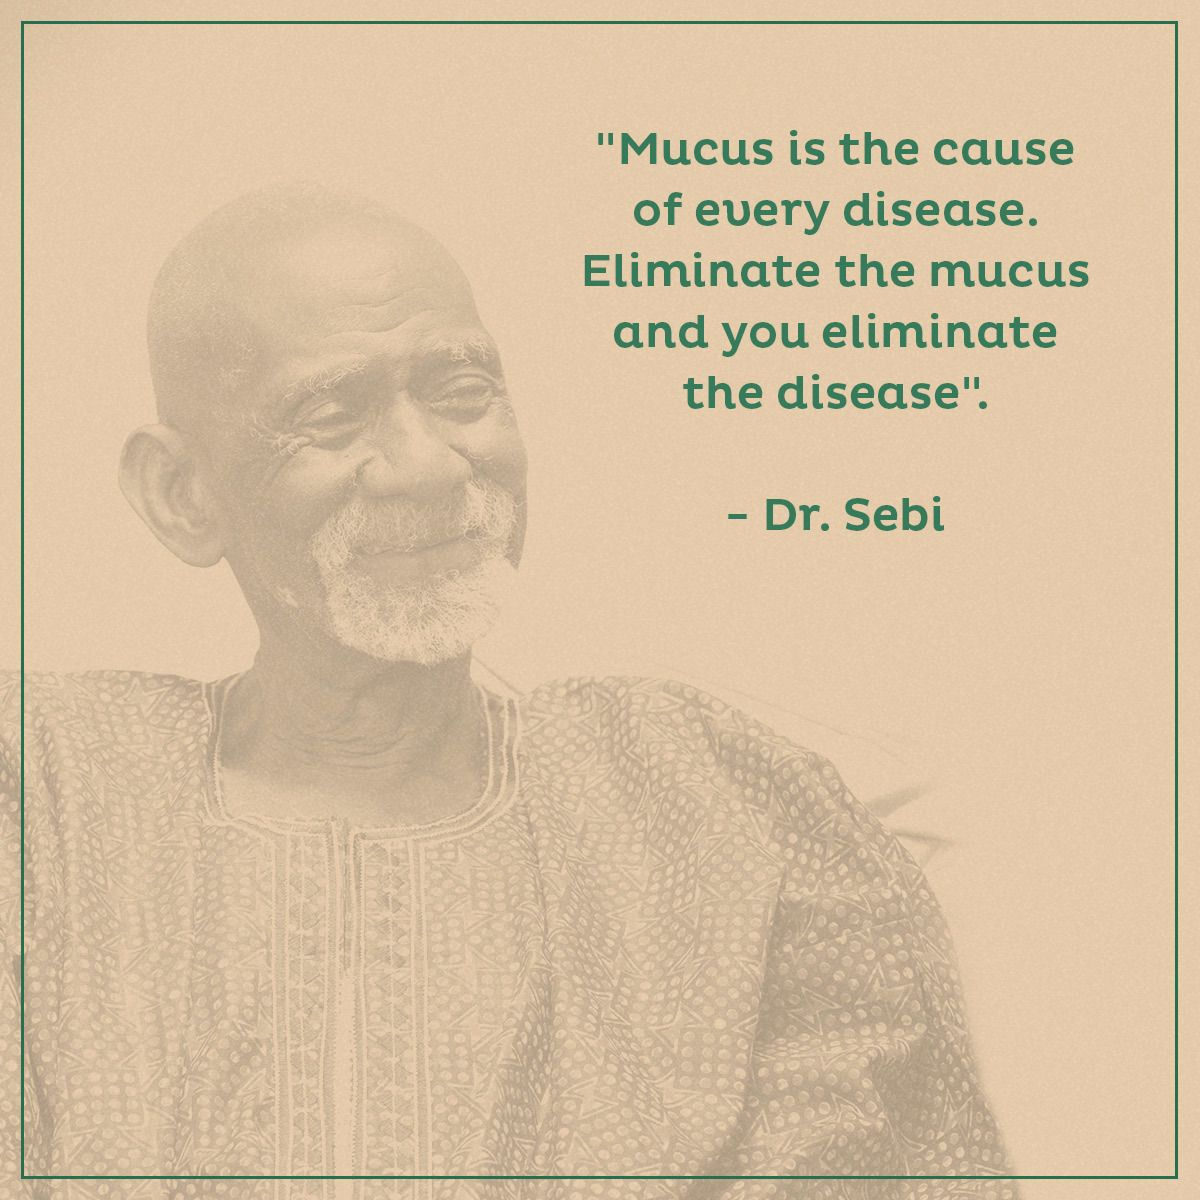 Mucus is the cause of every disease  Eliminate the mucus and you